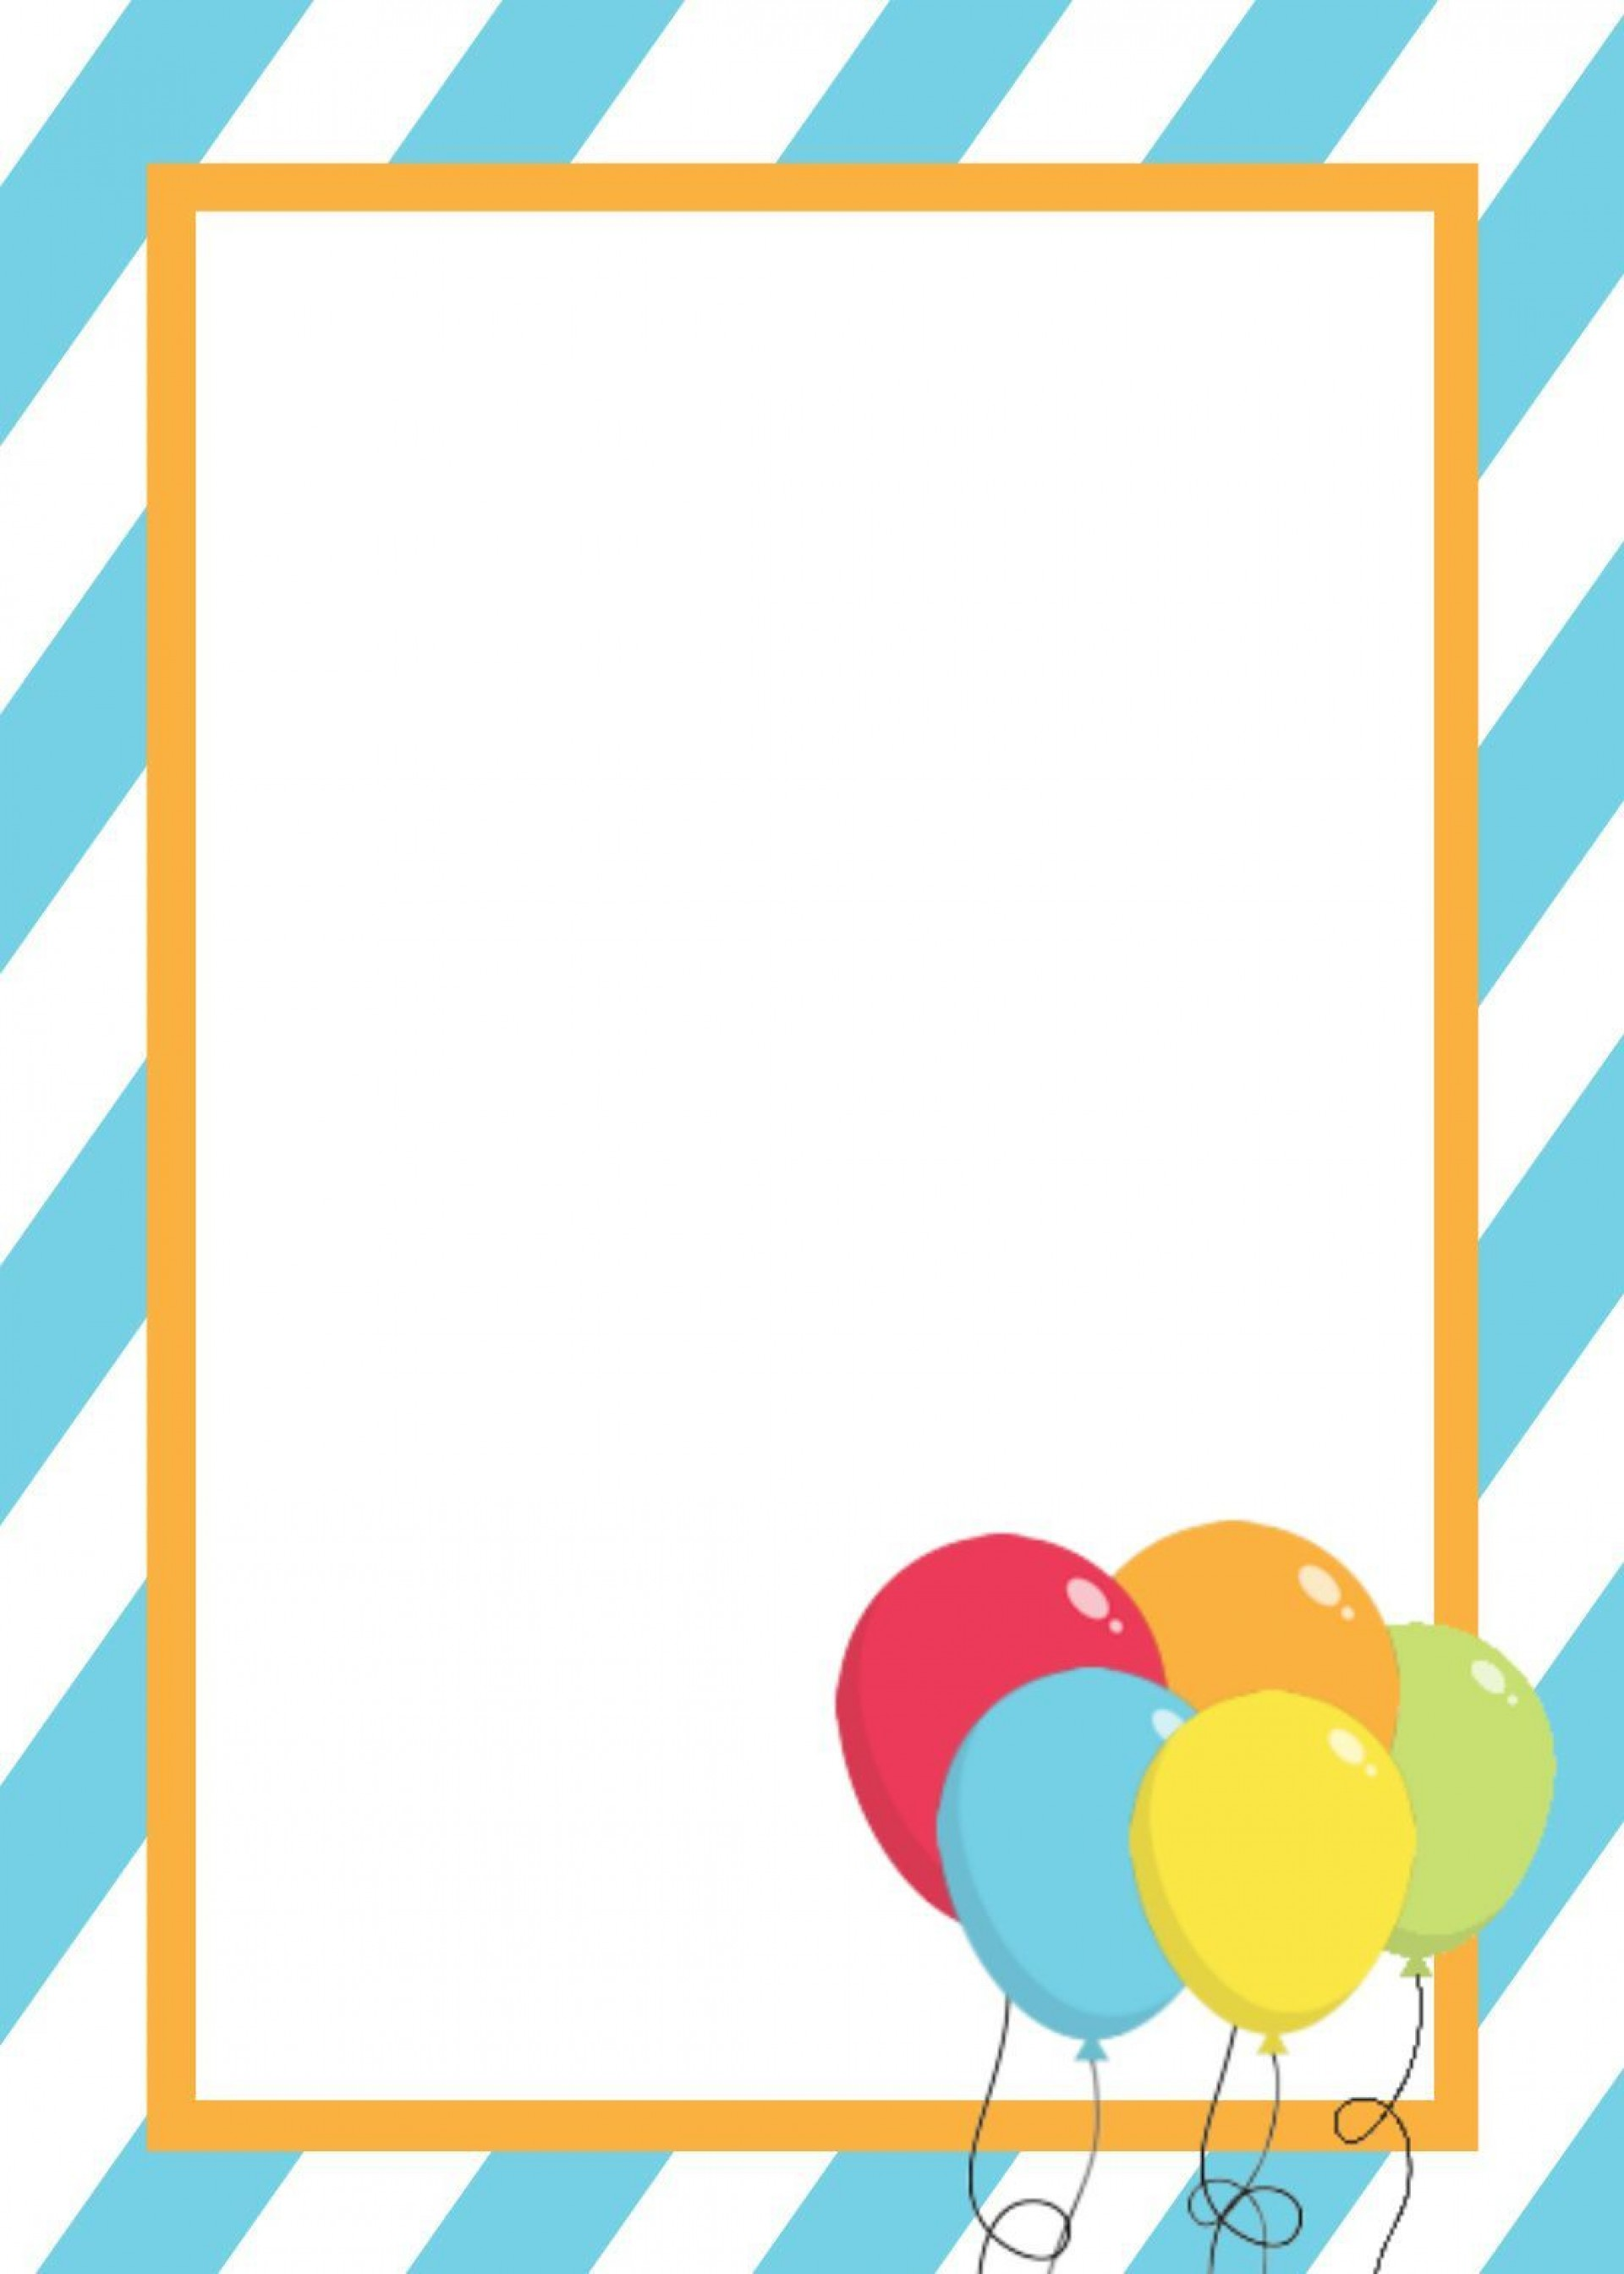 001 Incredible Free Birthday Party Invitation Template For Word Idea 1920